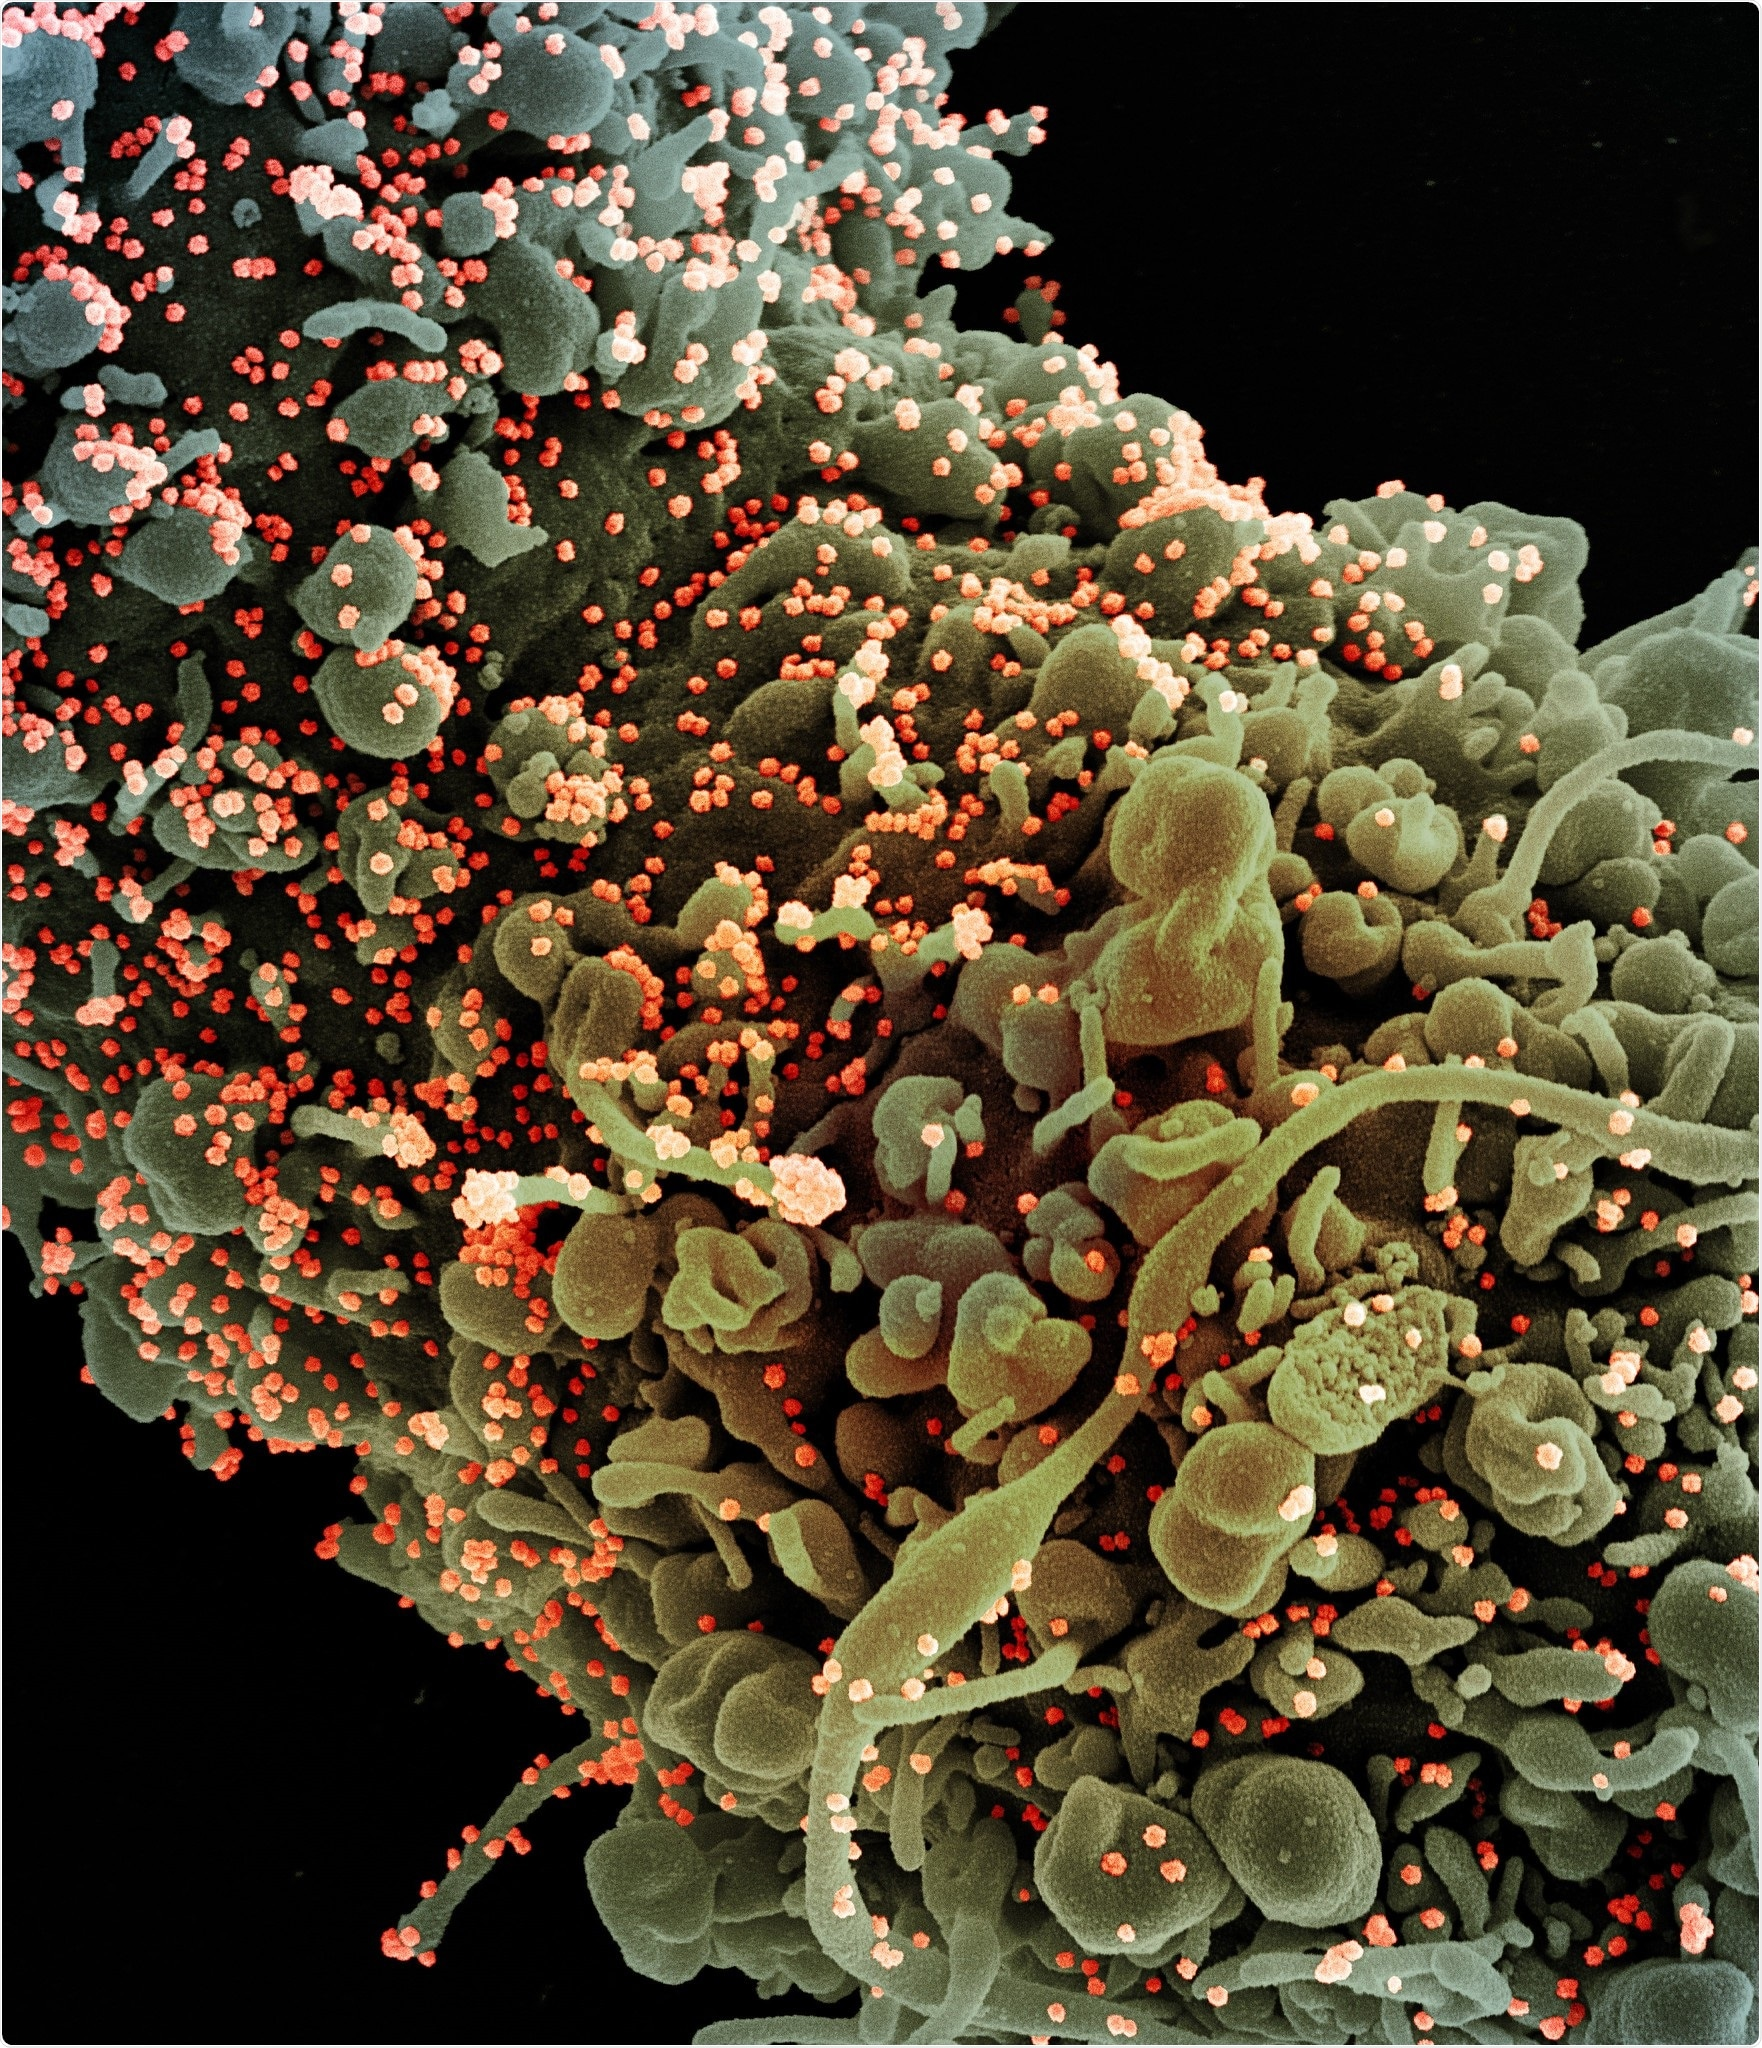 Colorized scanning electron micrograph of a cell showing morphological signs of apoptosis, infected with SARS-COV-2 virus particles (orange), isolated from a patient sample. Image captured at the NIAID Integrated Research Facility (IRF) in Fort Detrick, Maryland. Credit: NIAID/NIH